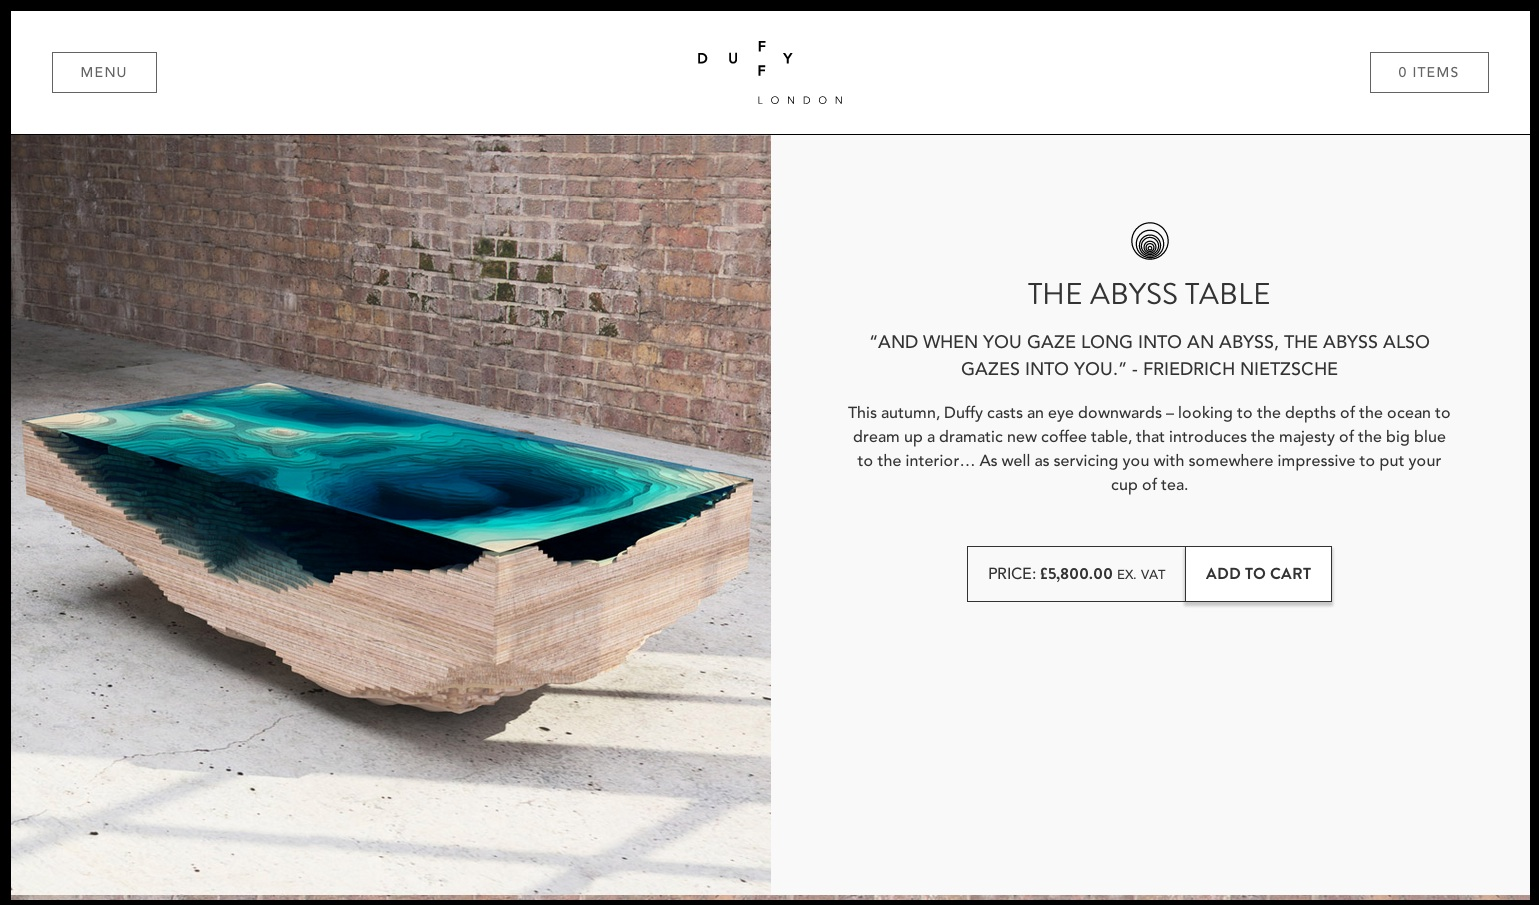 Duffy Londons Abyss Table Evokes Ocean Depths - Coffee table depth